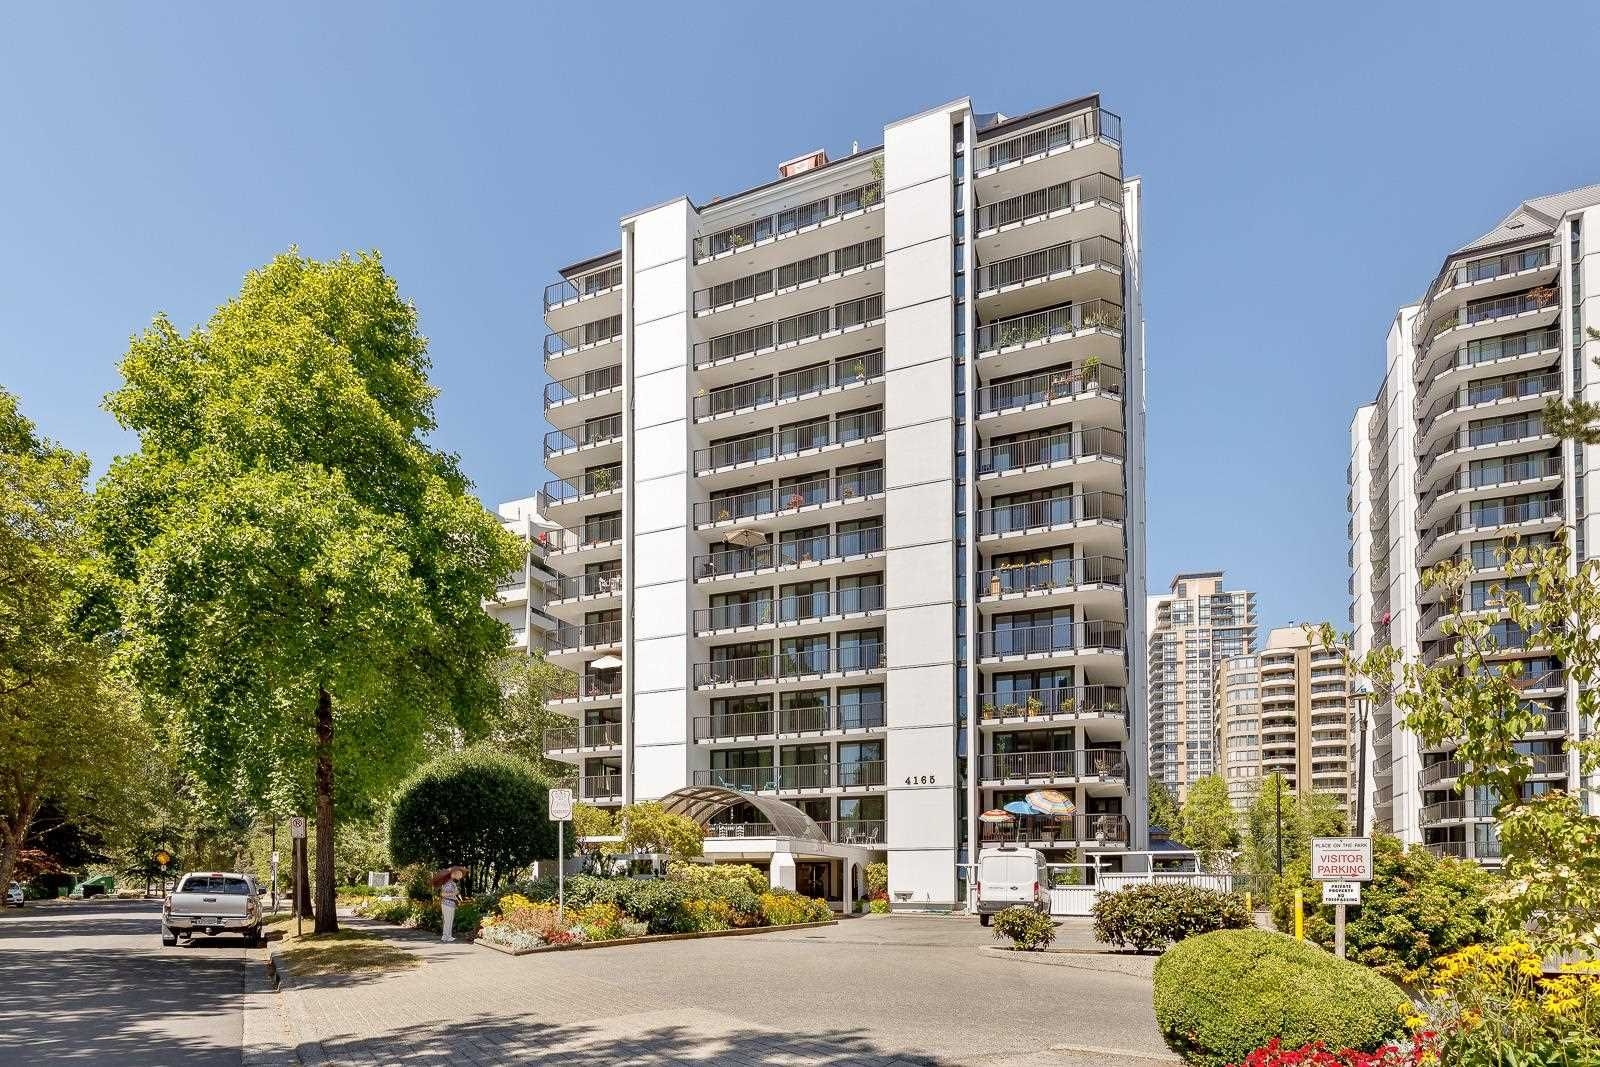 Main Photo: 1401 4165 MAYWOOD Street in Burnaby: Metrotown Condo for sale (Burnaby South)  : MLS®# R2606589